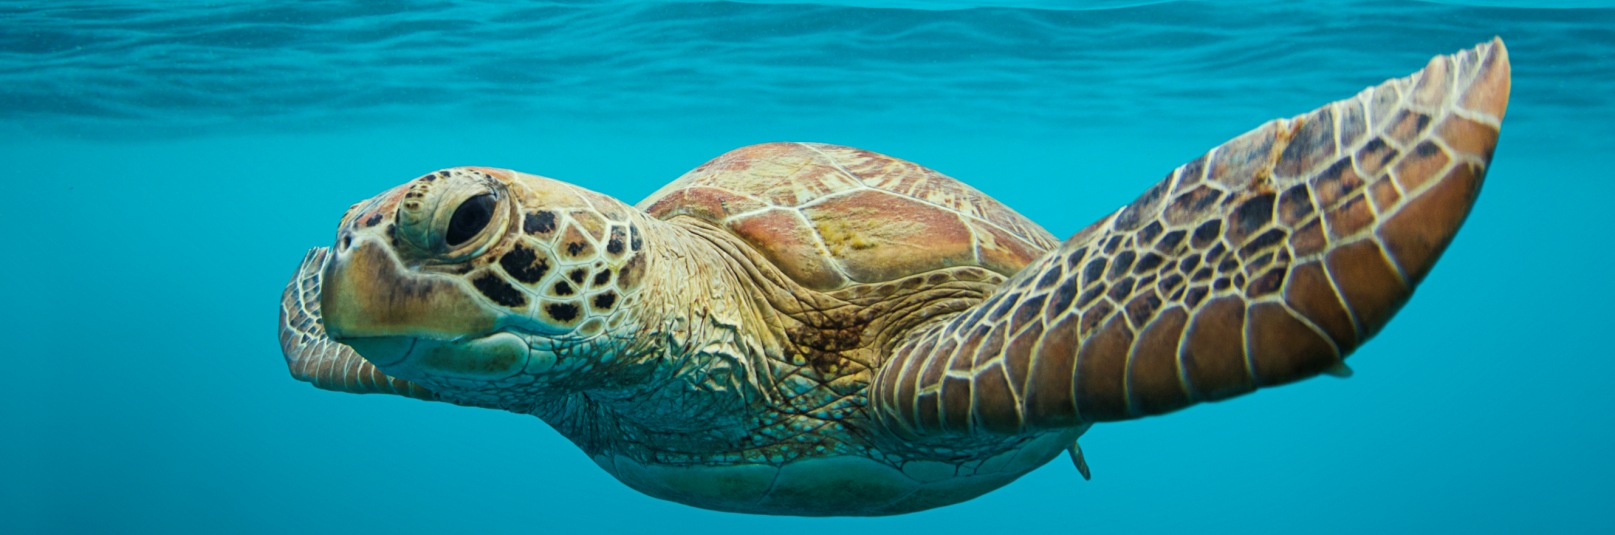 Whitsunday Turtle - Ocean Clean Prints Photography